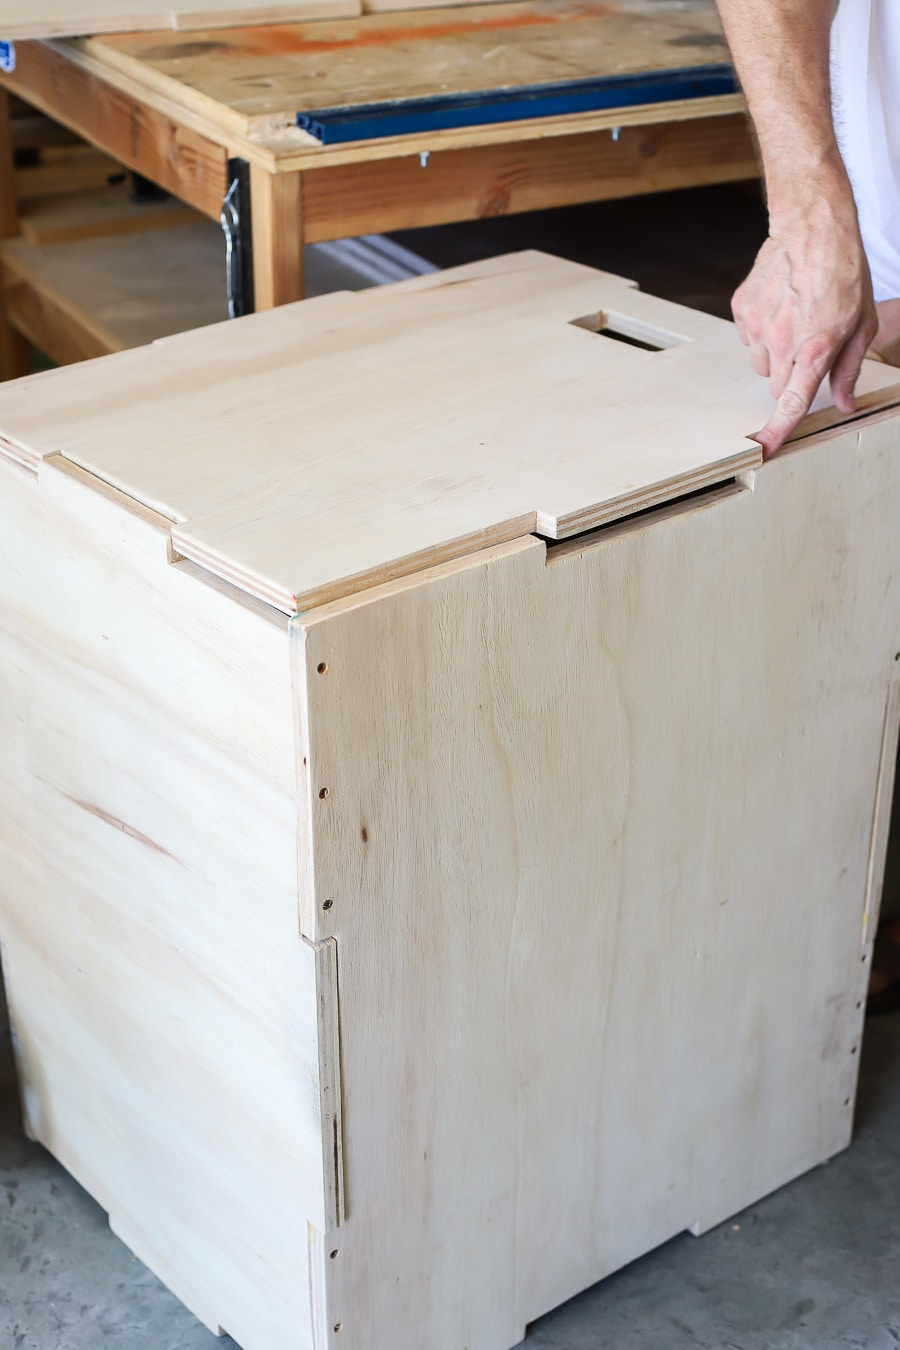 How to make a DIY plyo box jump